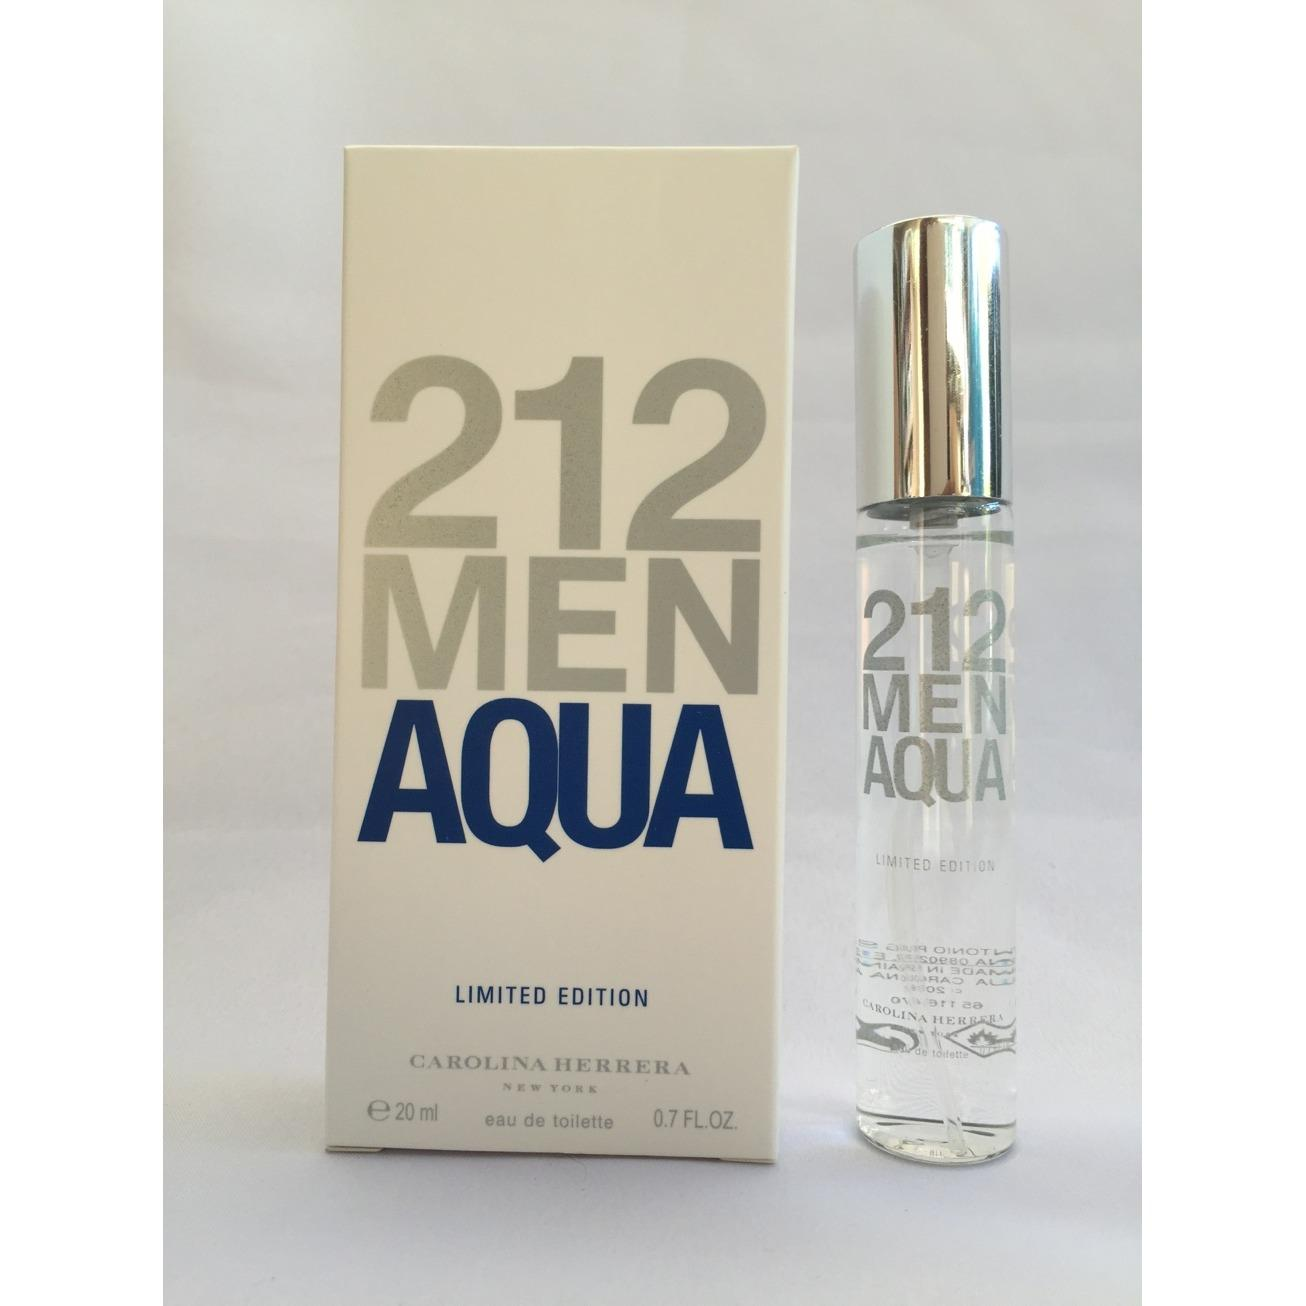 Limited Original 212 Men Aqua by Carolina Hererra EDT 20ml - Travel Size product preview, discount at cheapest price